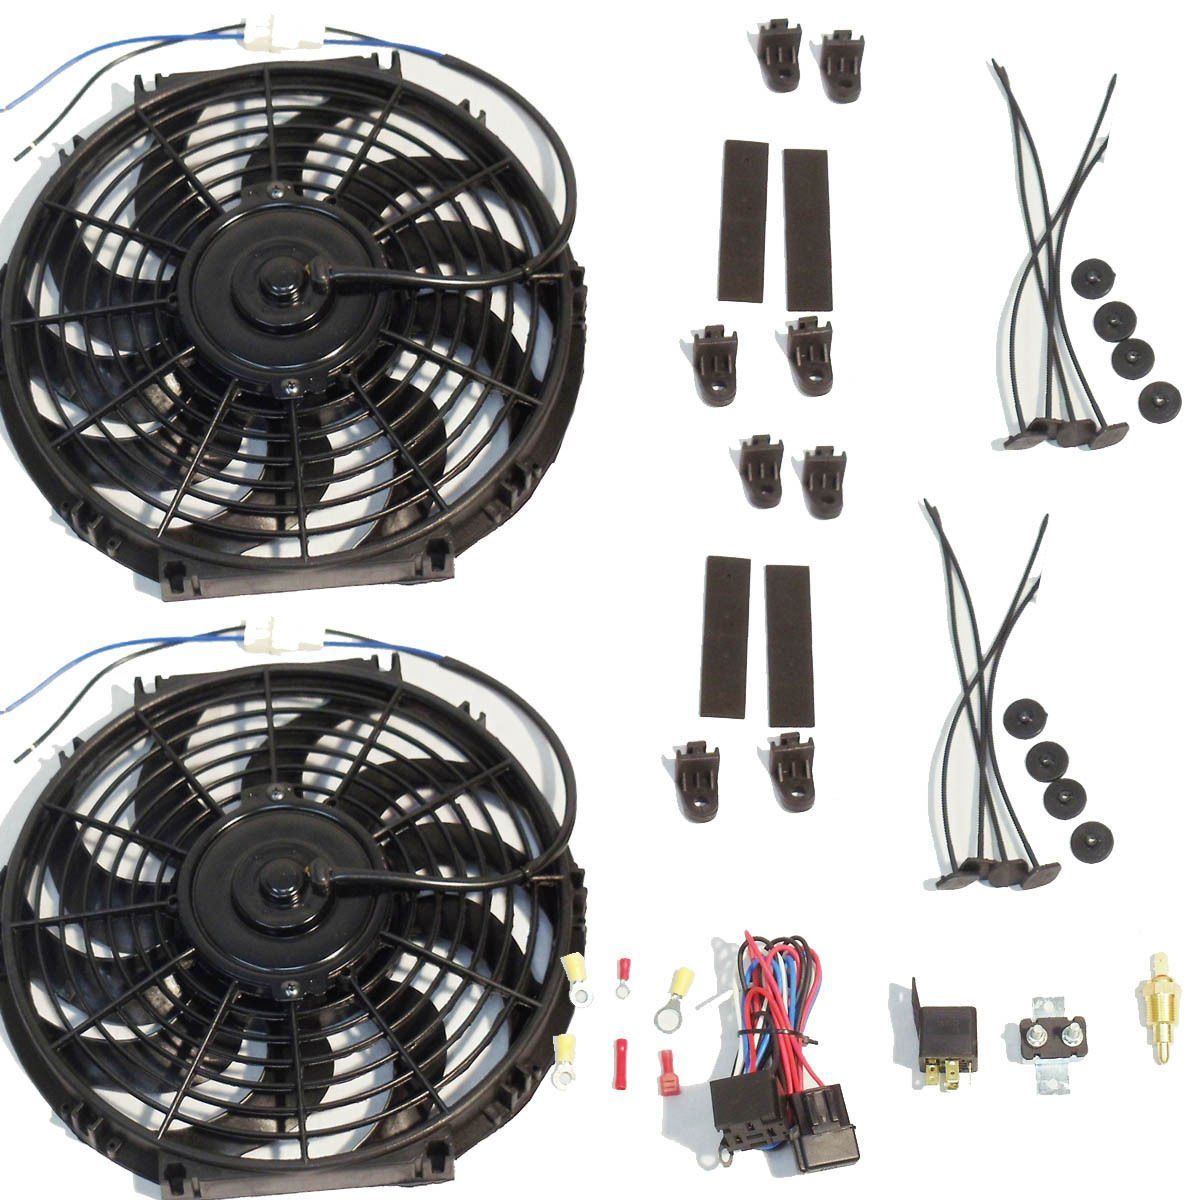 Dual 2 12' Curved Blade Reversible Cooling Fans 12v 1400cfm + Thermostat Kit DEMOTOR